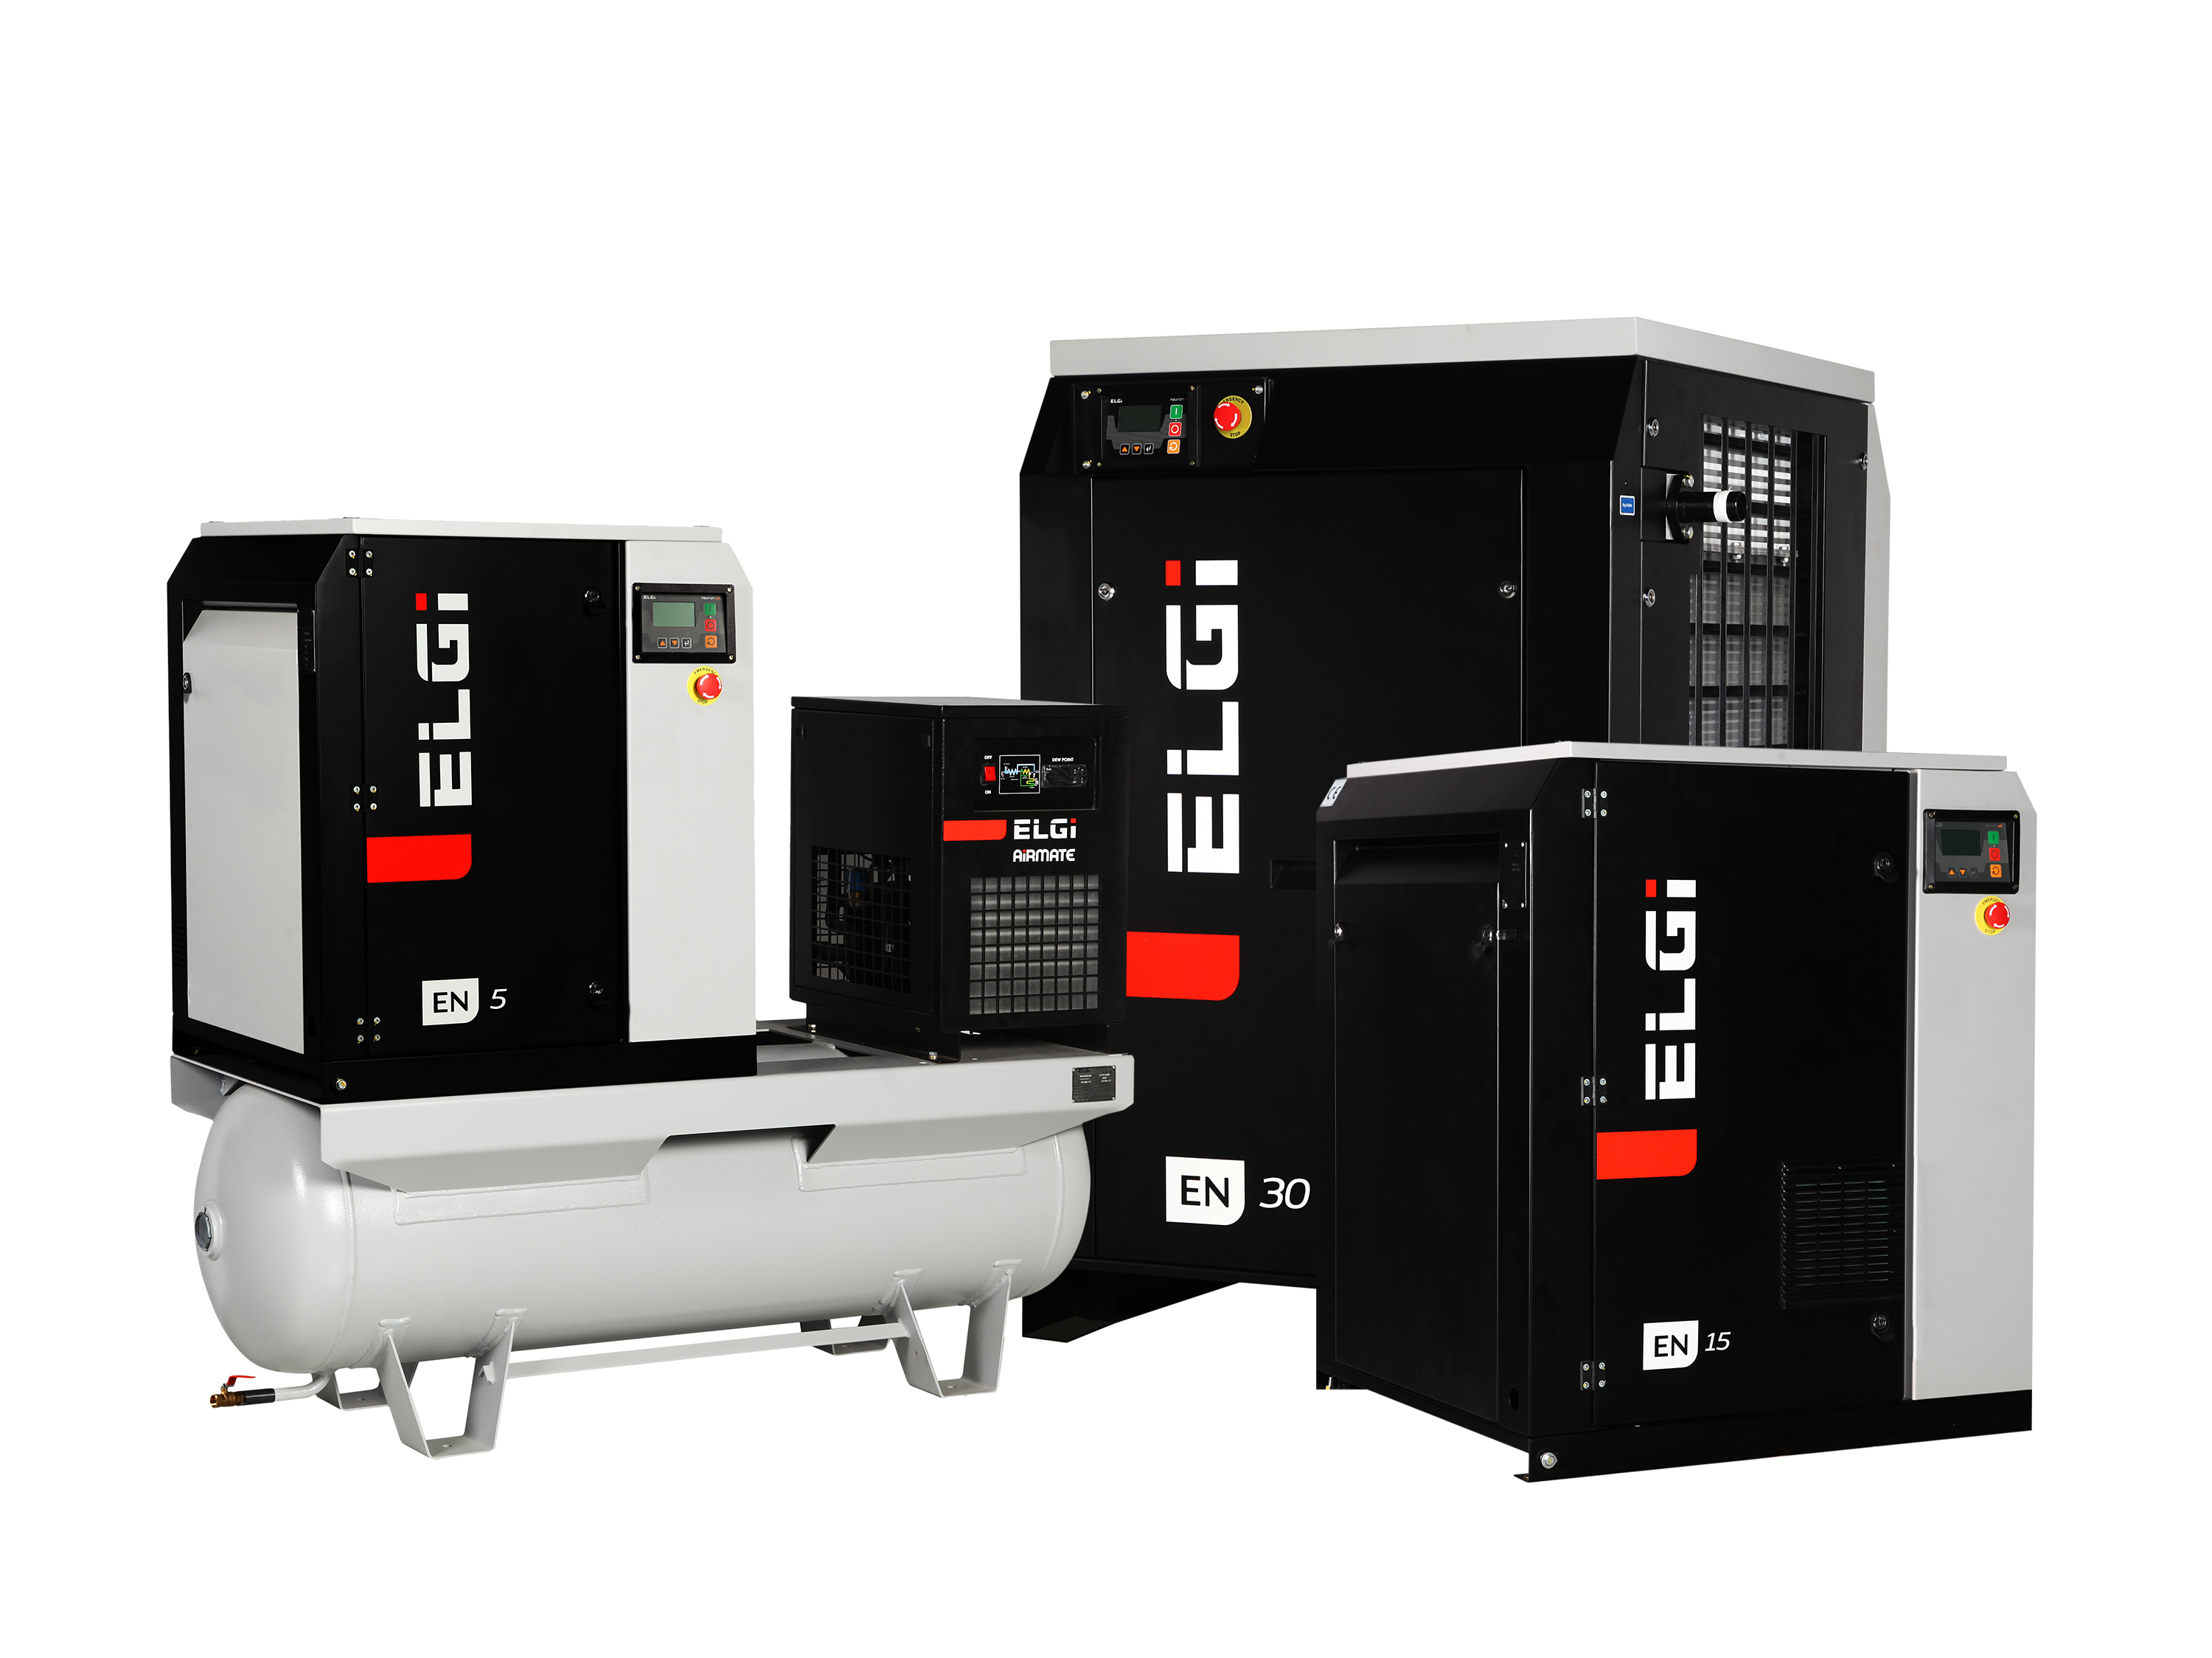 En-Series-–-Belt-driven-Screw-Compressors-2kW-to-30kW.png